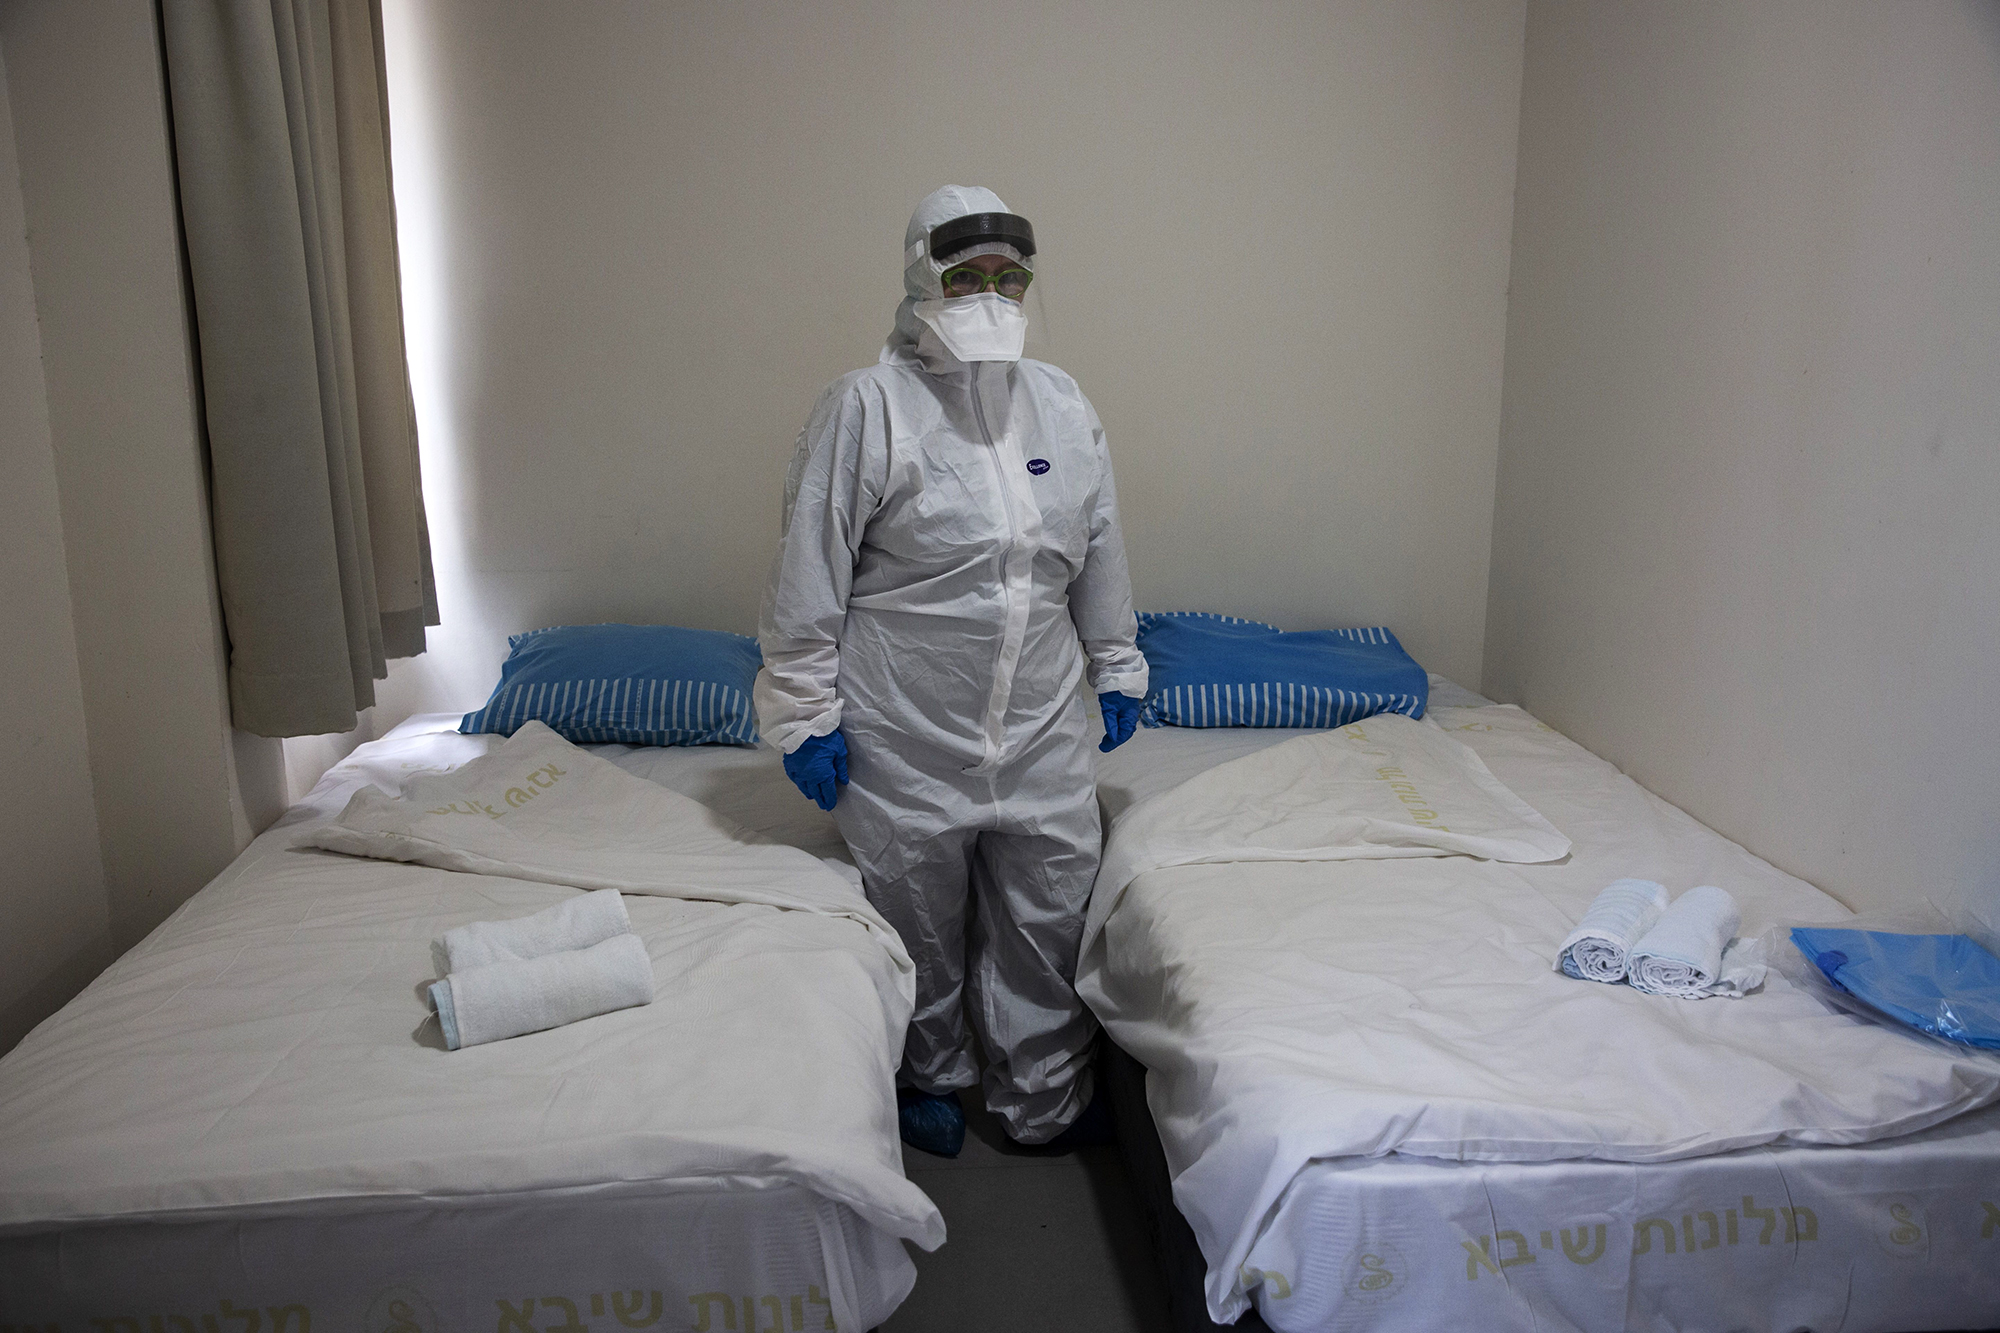 Israeli Professor Galia Rahavm, the head of infectious diseases, stands in one of the rooms where Israelis returning from China will stay under observation and isolation to control the spread of the coronavirus, at the Chaim Sheba Medical Center at Tel Hashomer near Tel Aviv on Wednesday, February 19.